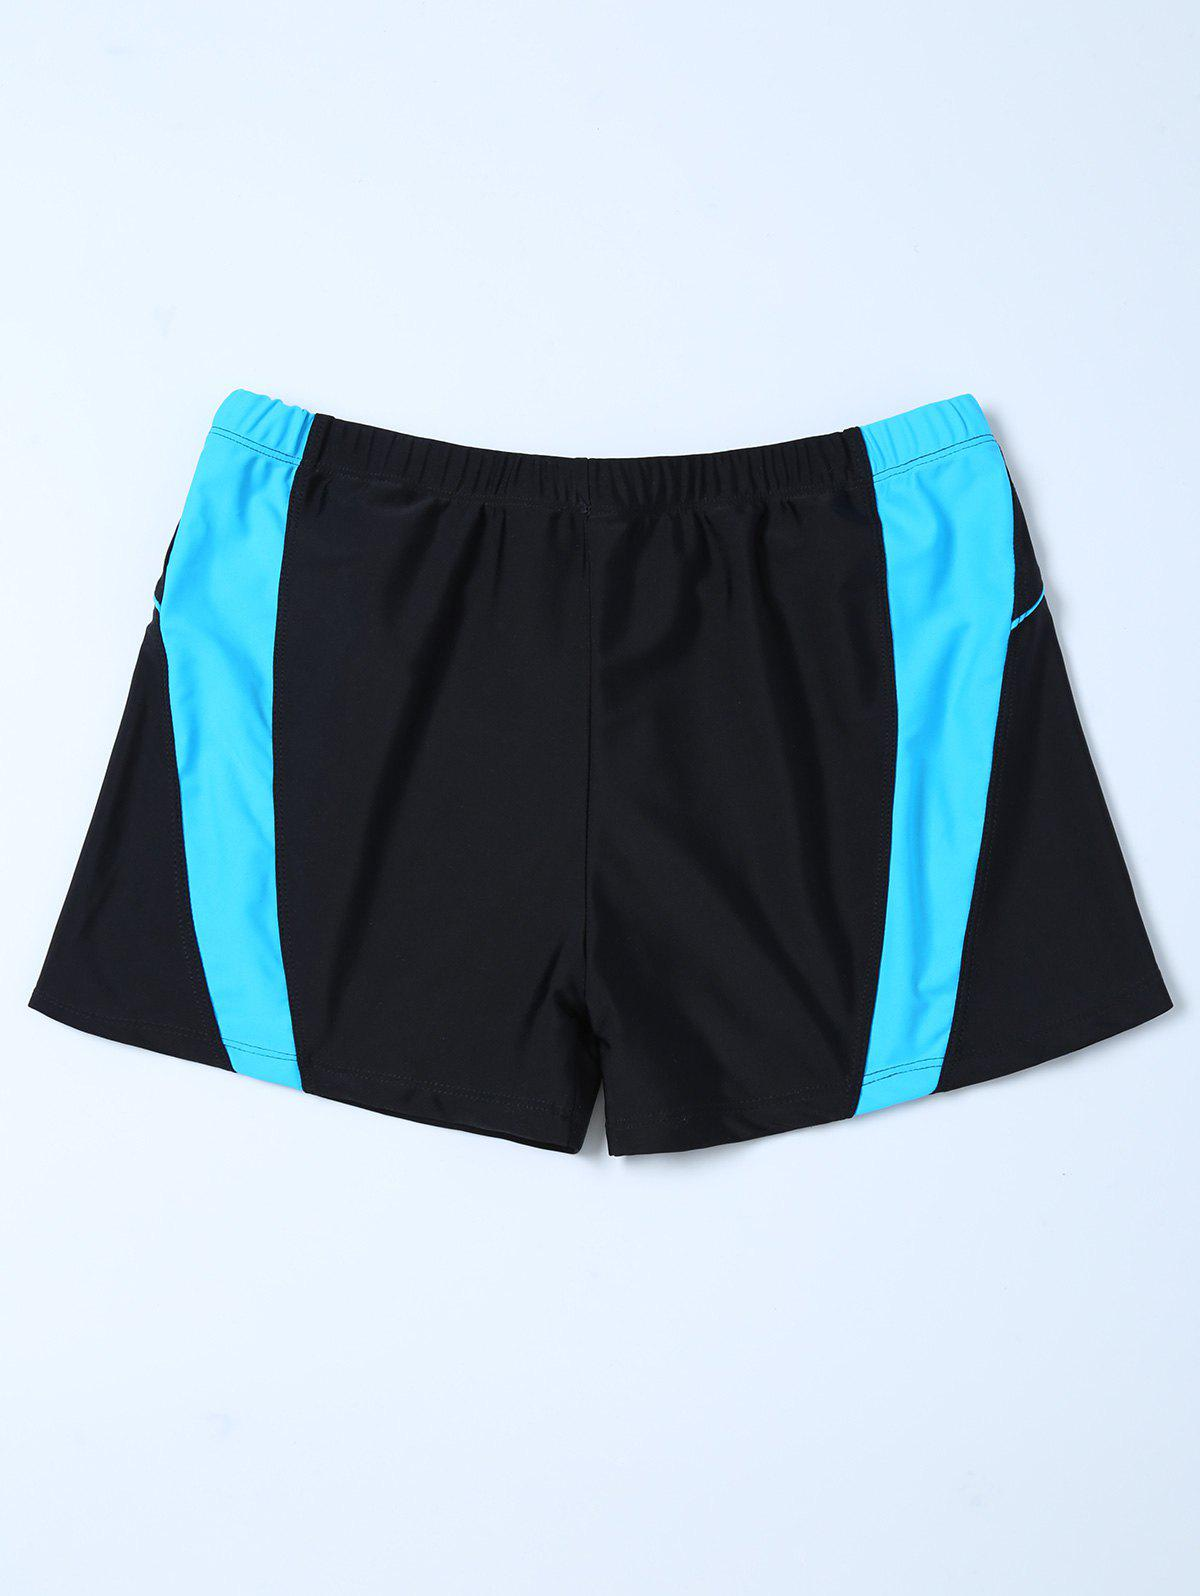 Contrast Insert Swim Bottoms Boyshorts - BLACK 4XL